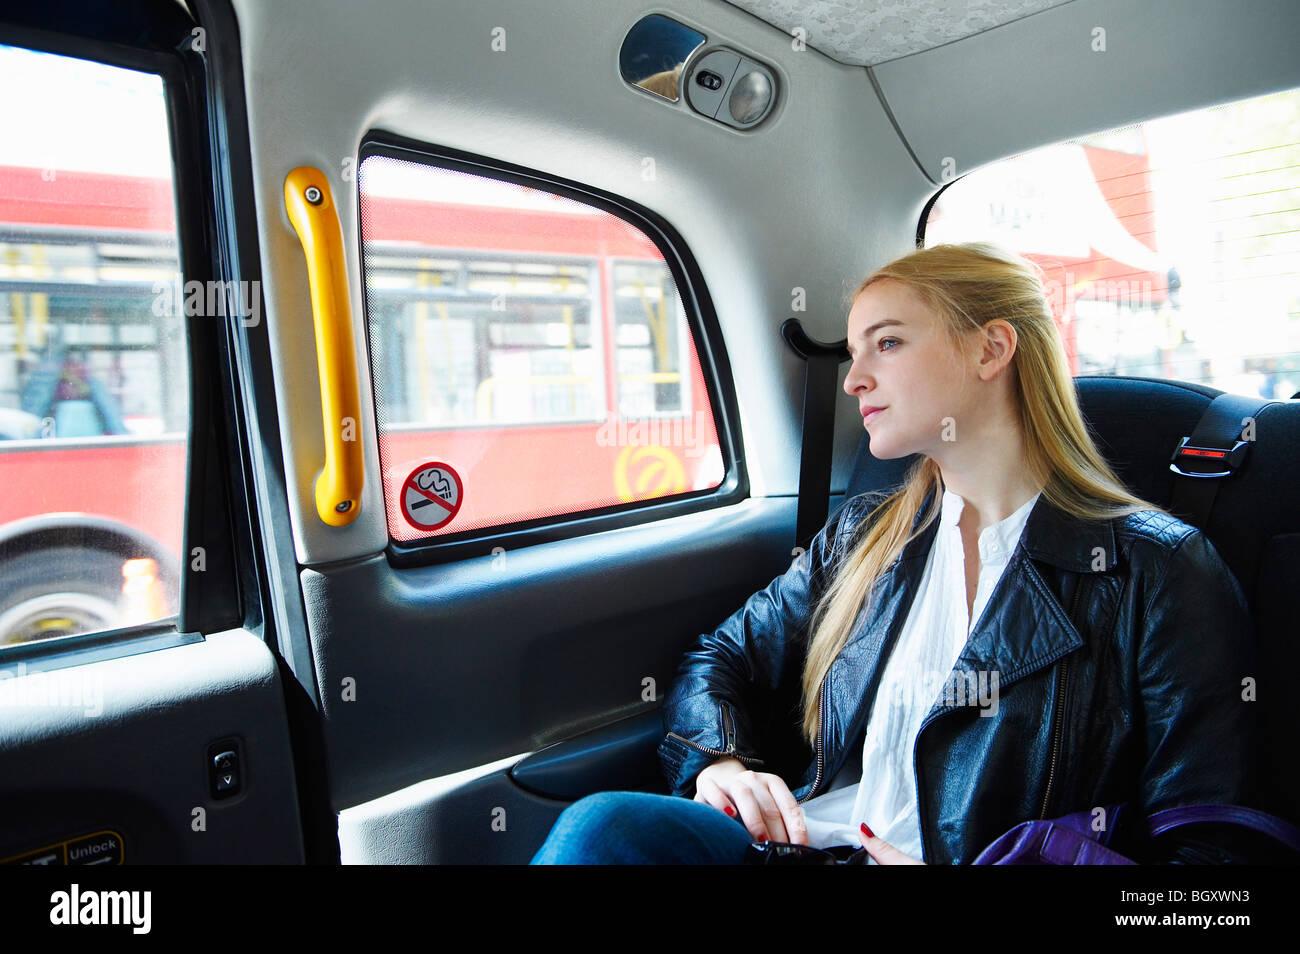 Woman in taxi - Stock Image